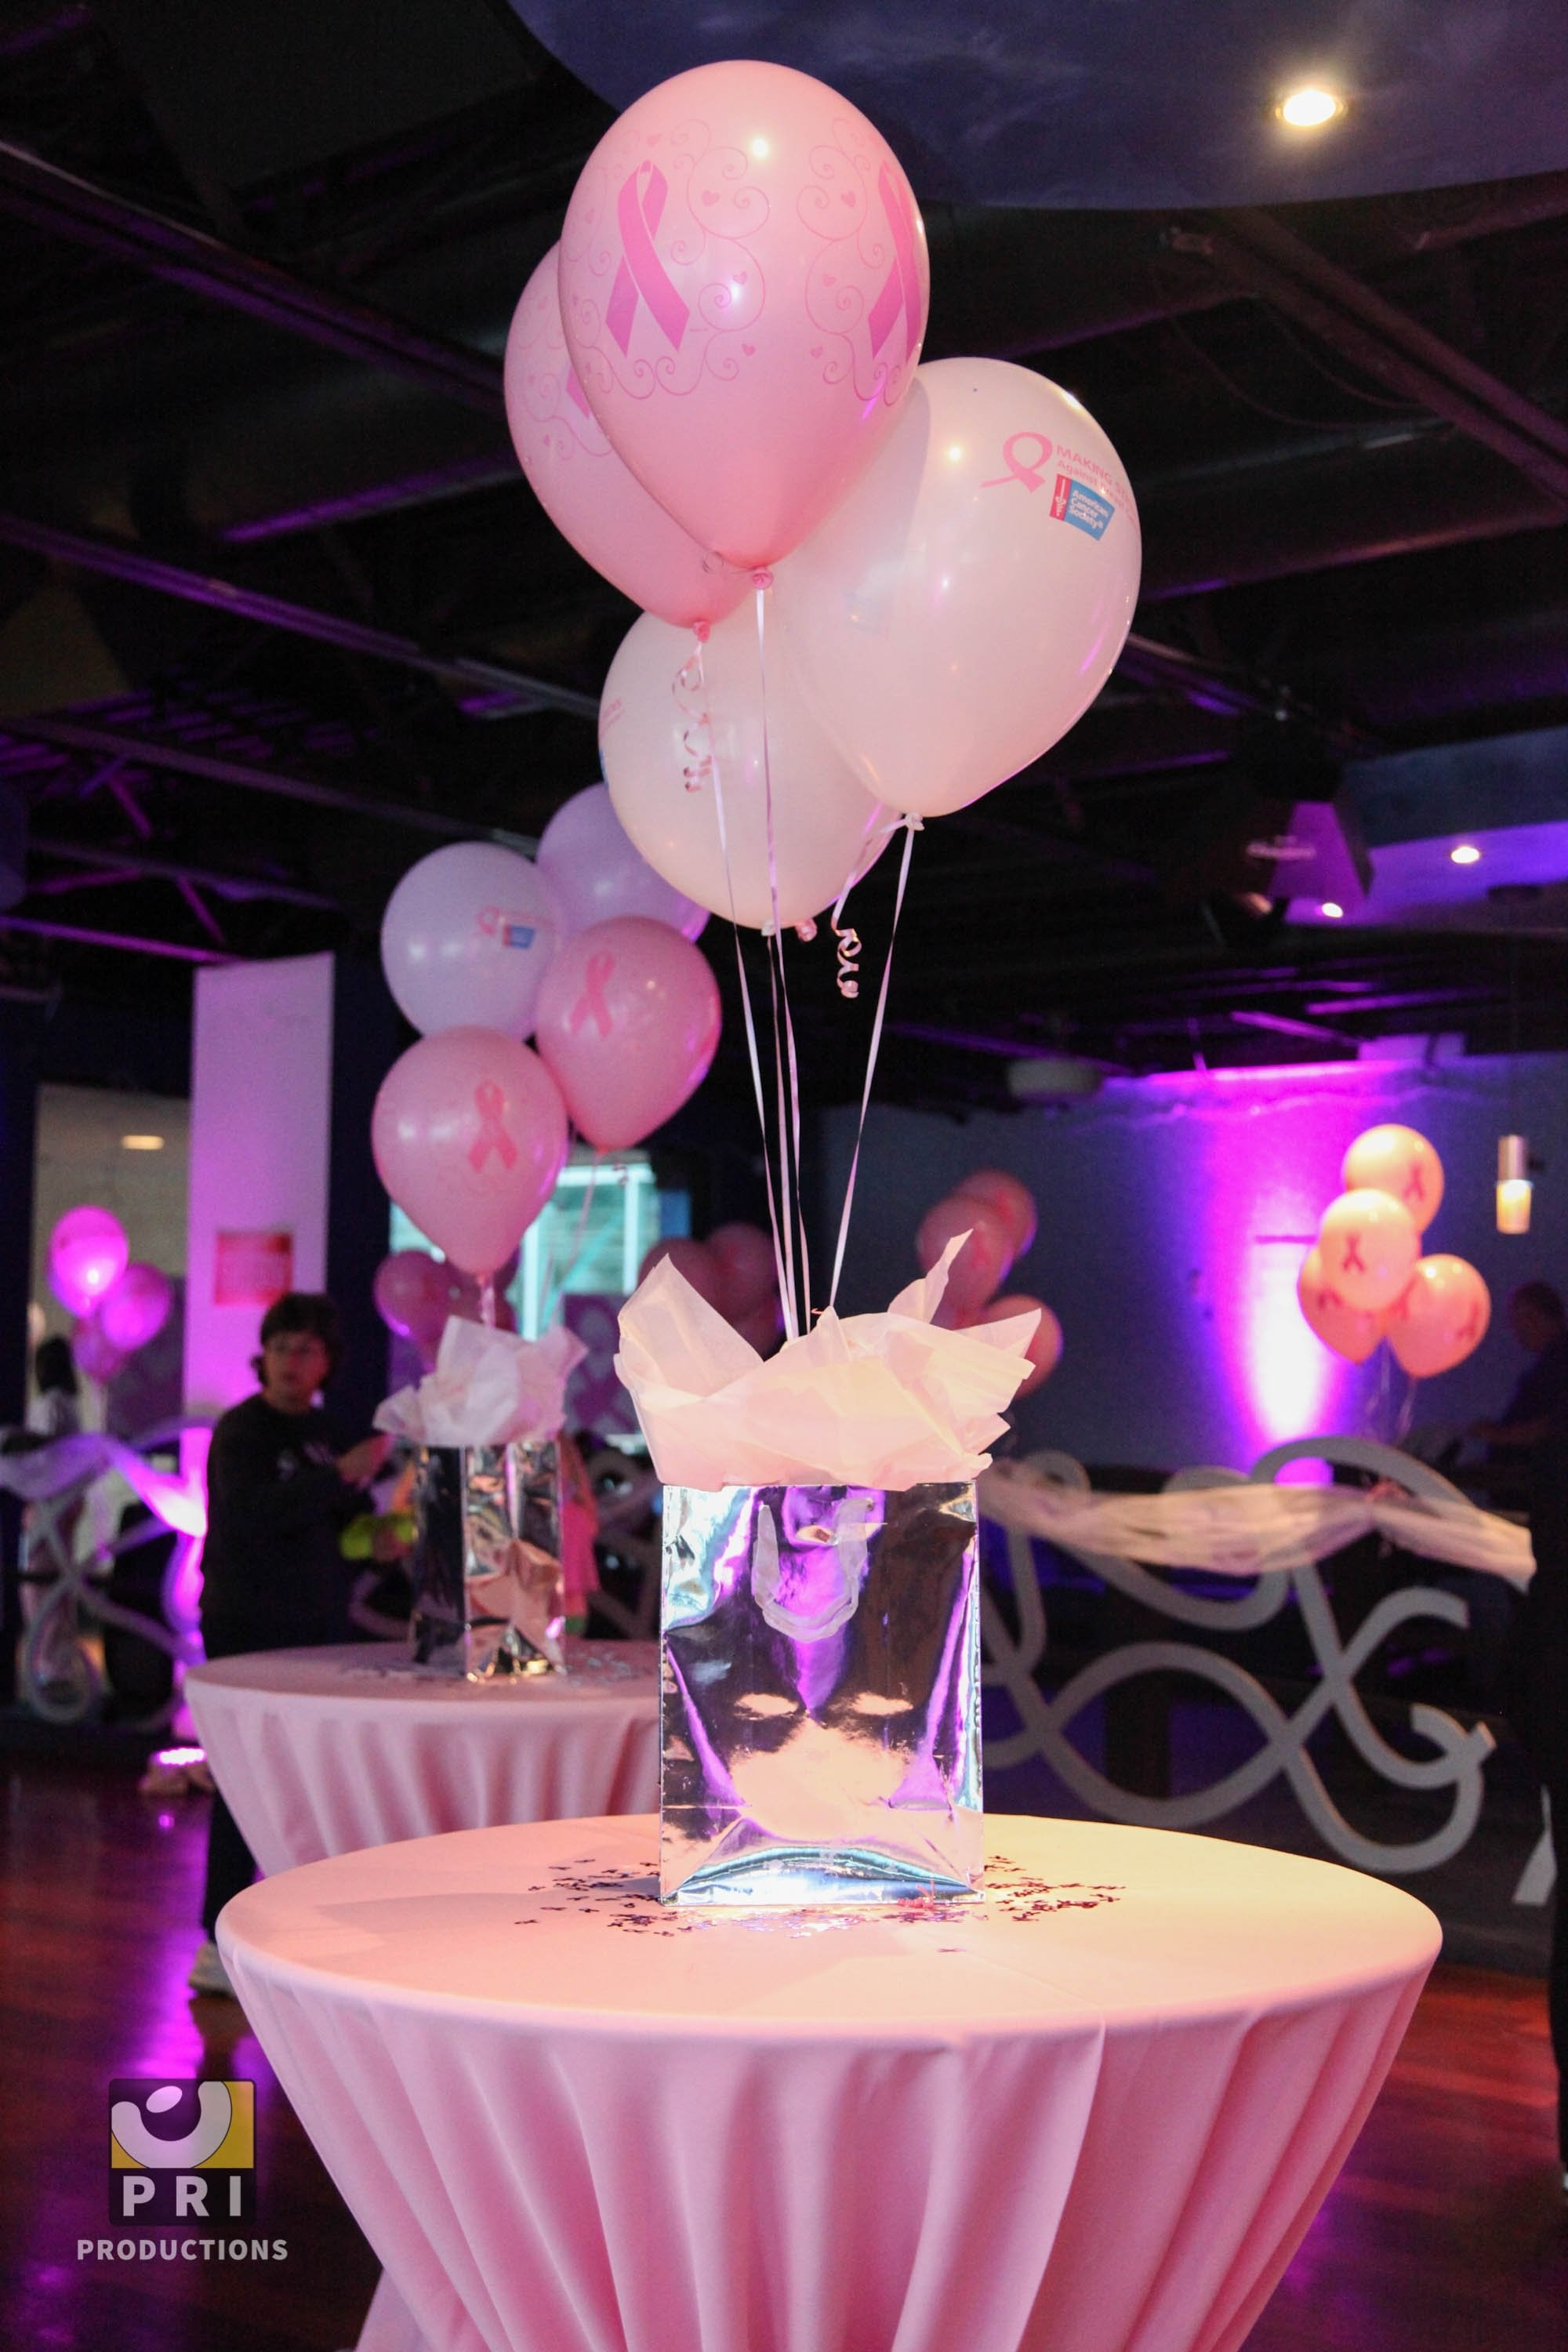 10 Stunning Breast Cancer Awareness Event Ideas pink balloon and gift bag centerpiece with matching table linens for 1 2020